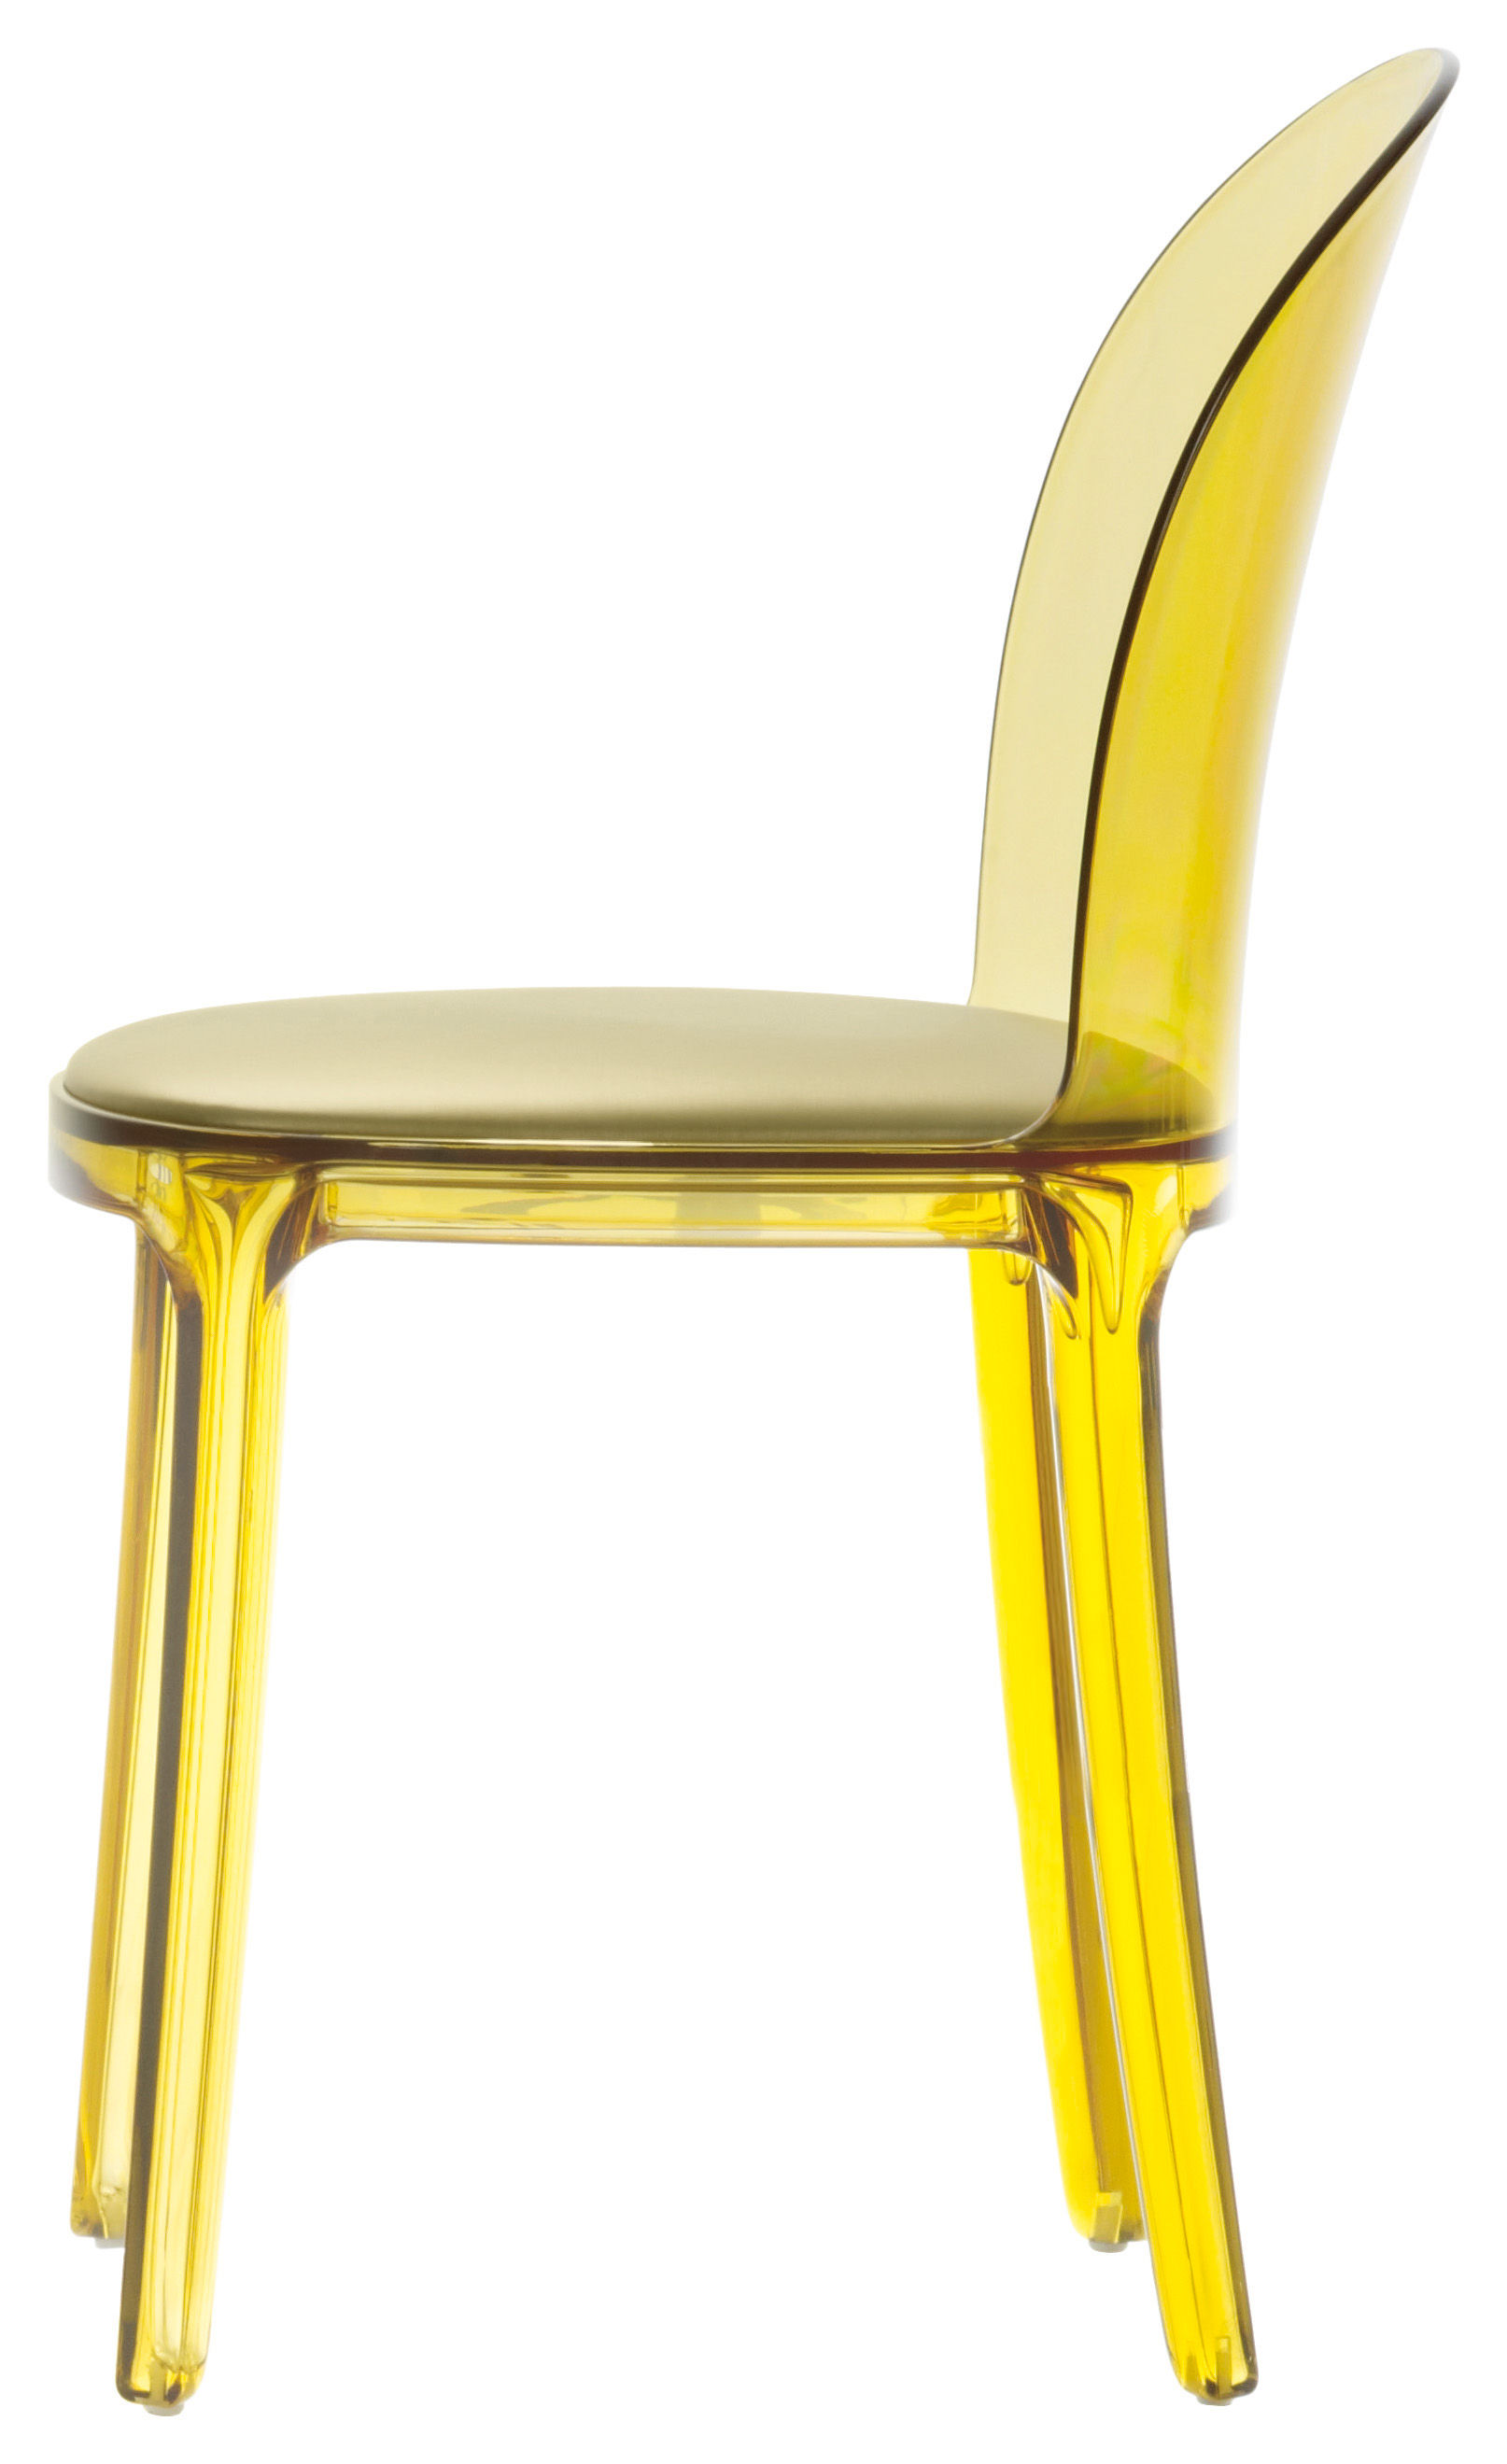 murano vanity chair chair polycarbonate fabric seat yellow gold cushion by magis. Black Bedroom Furniture Sets. Home Design Ideas